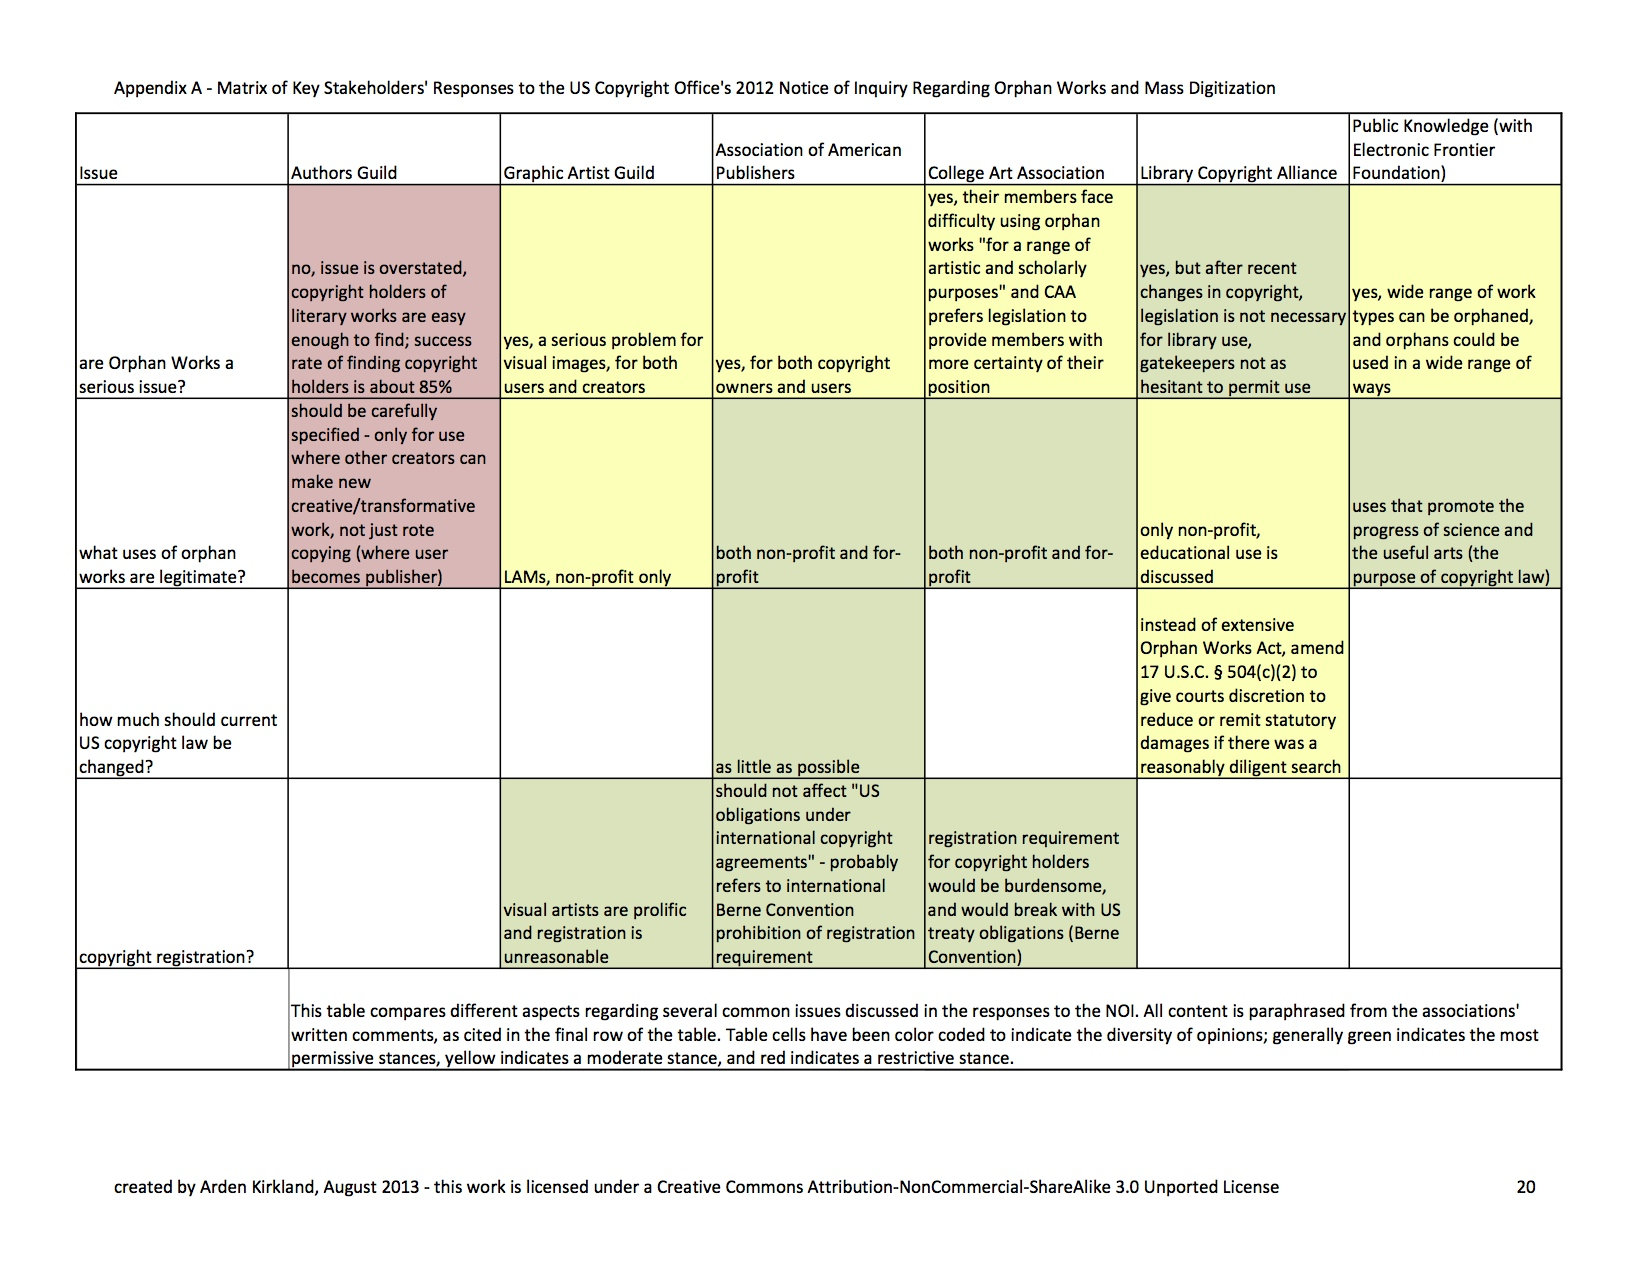 an image of a color-coded table